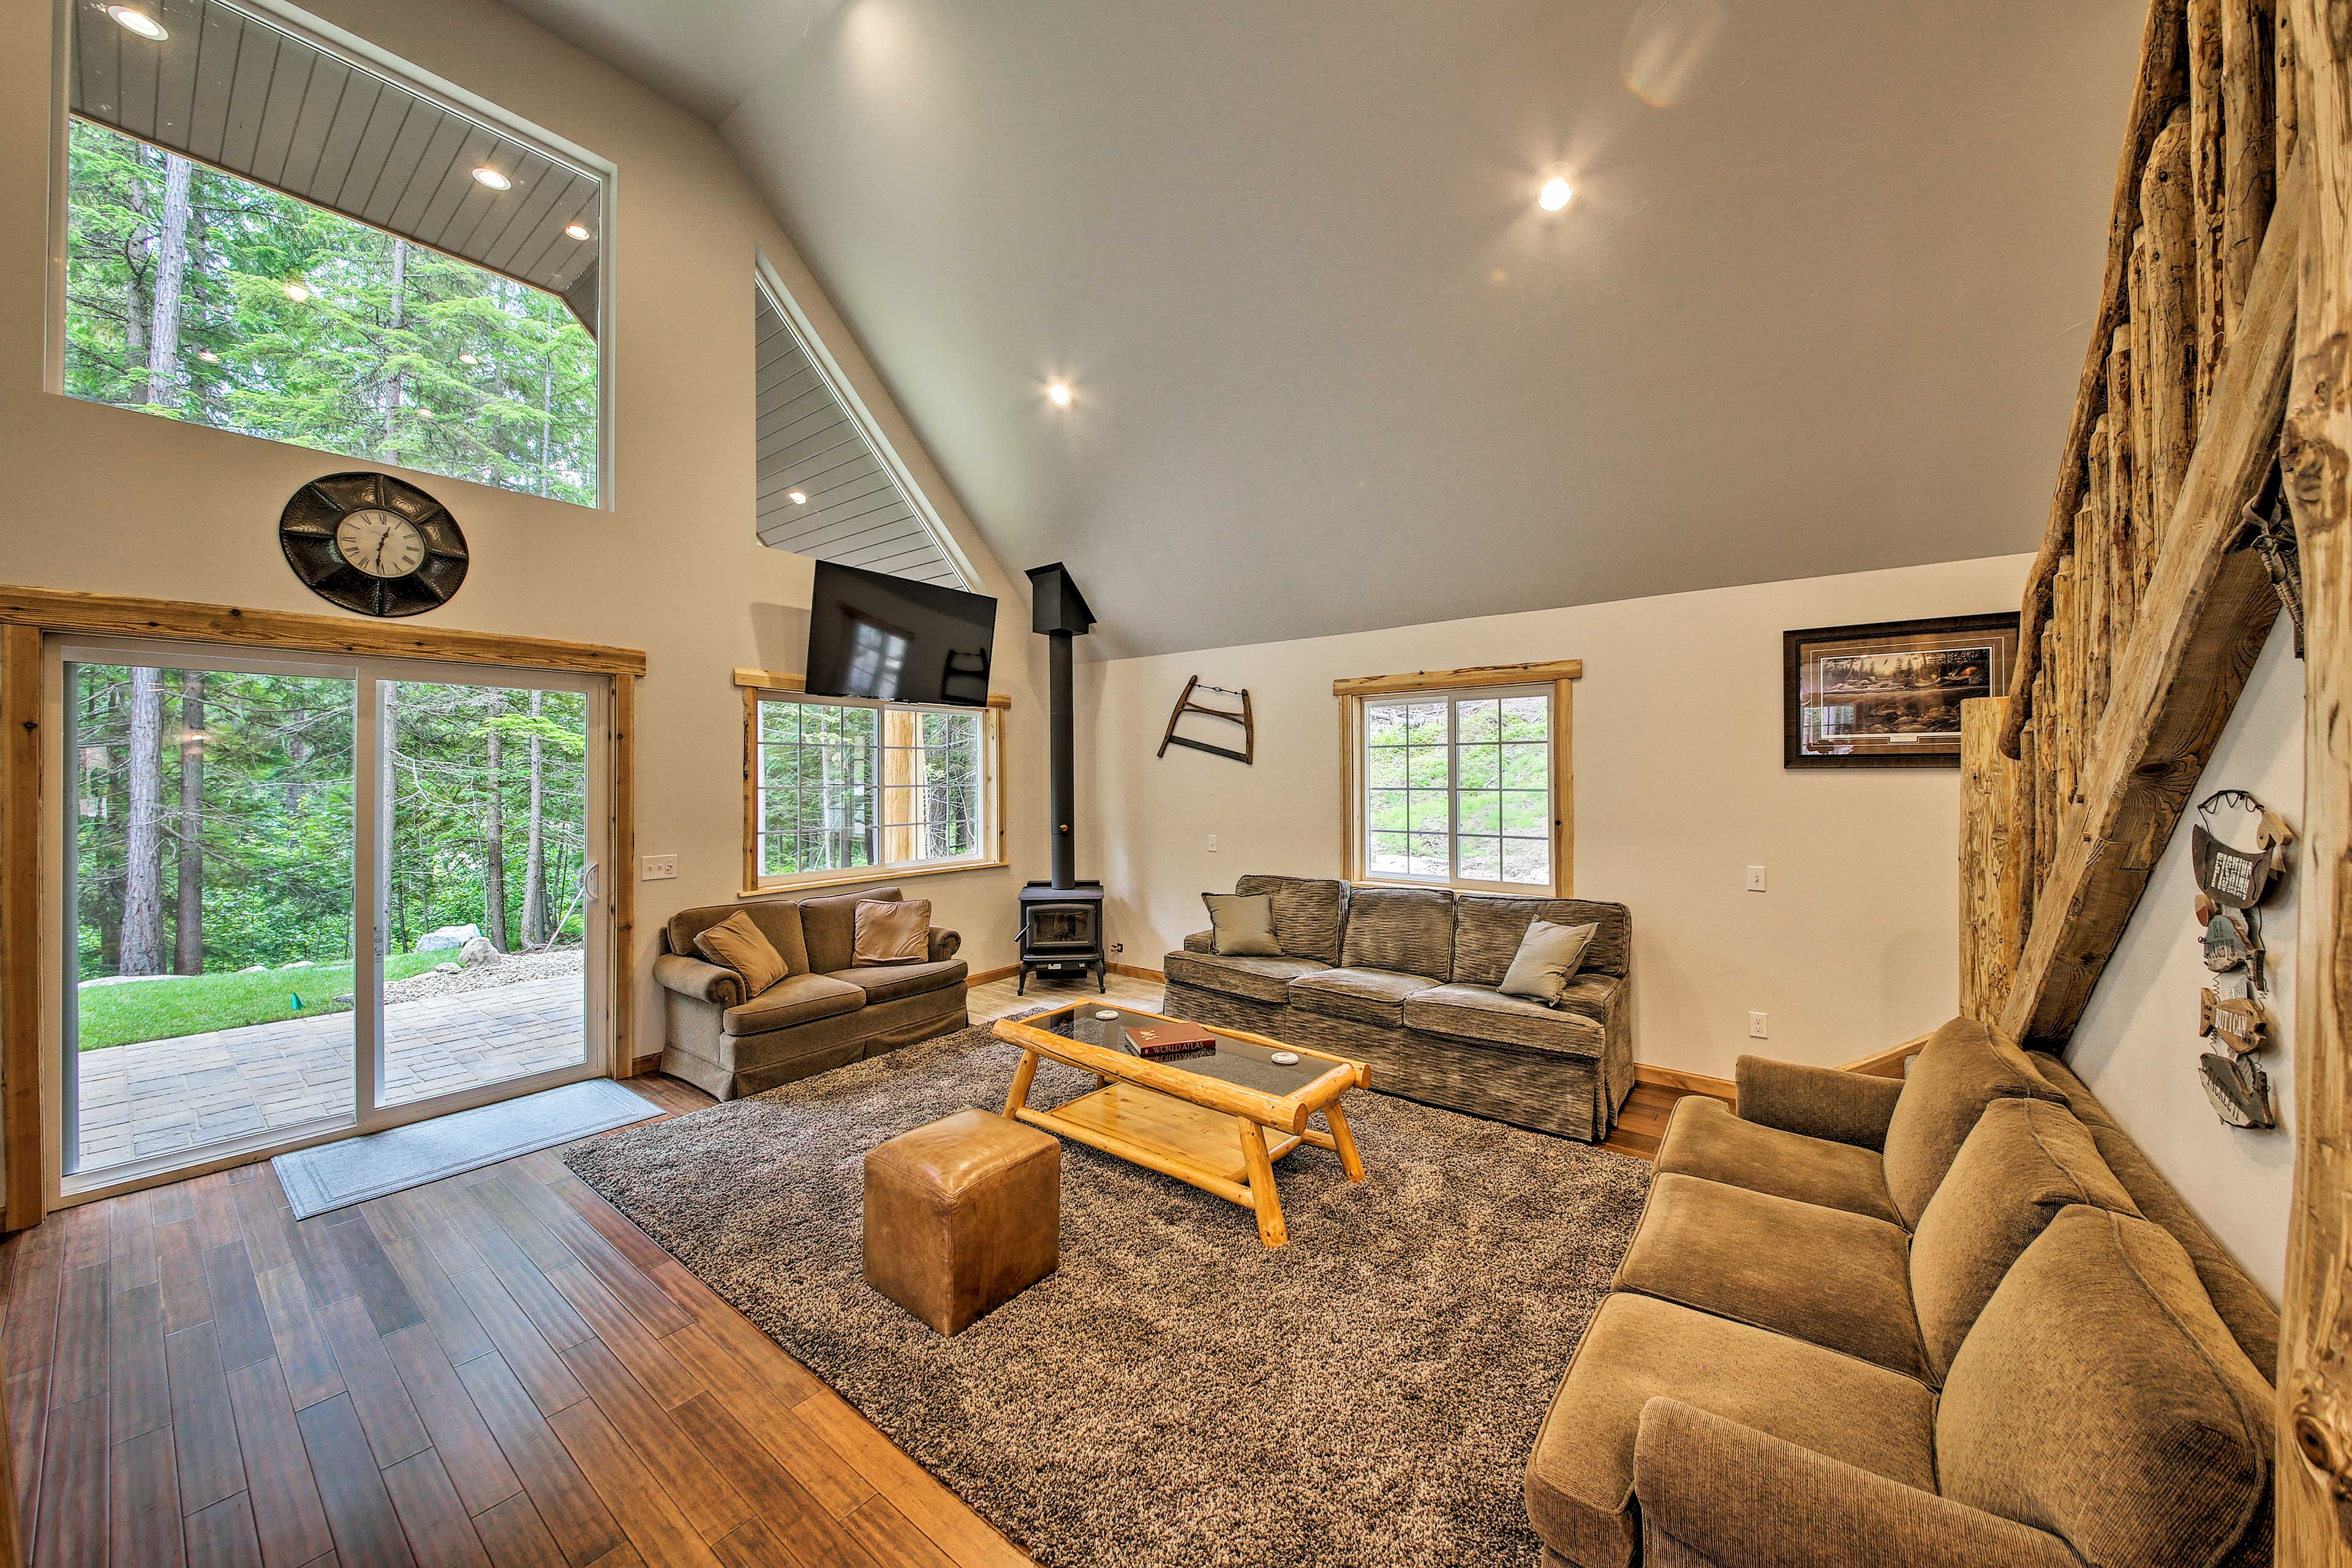 Gorgeous wood furnishings define the cabin's interior.